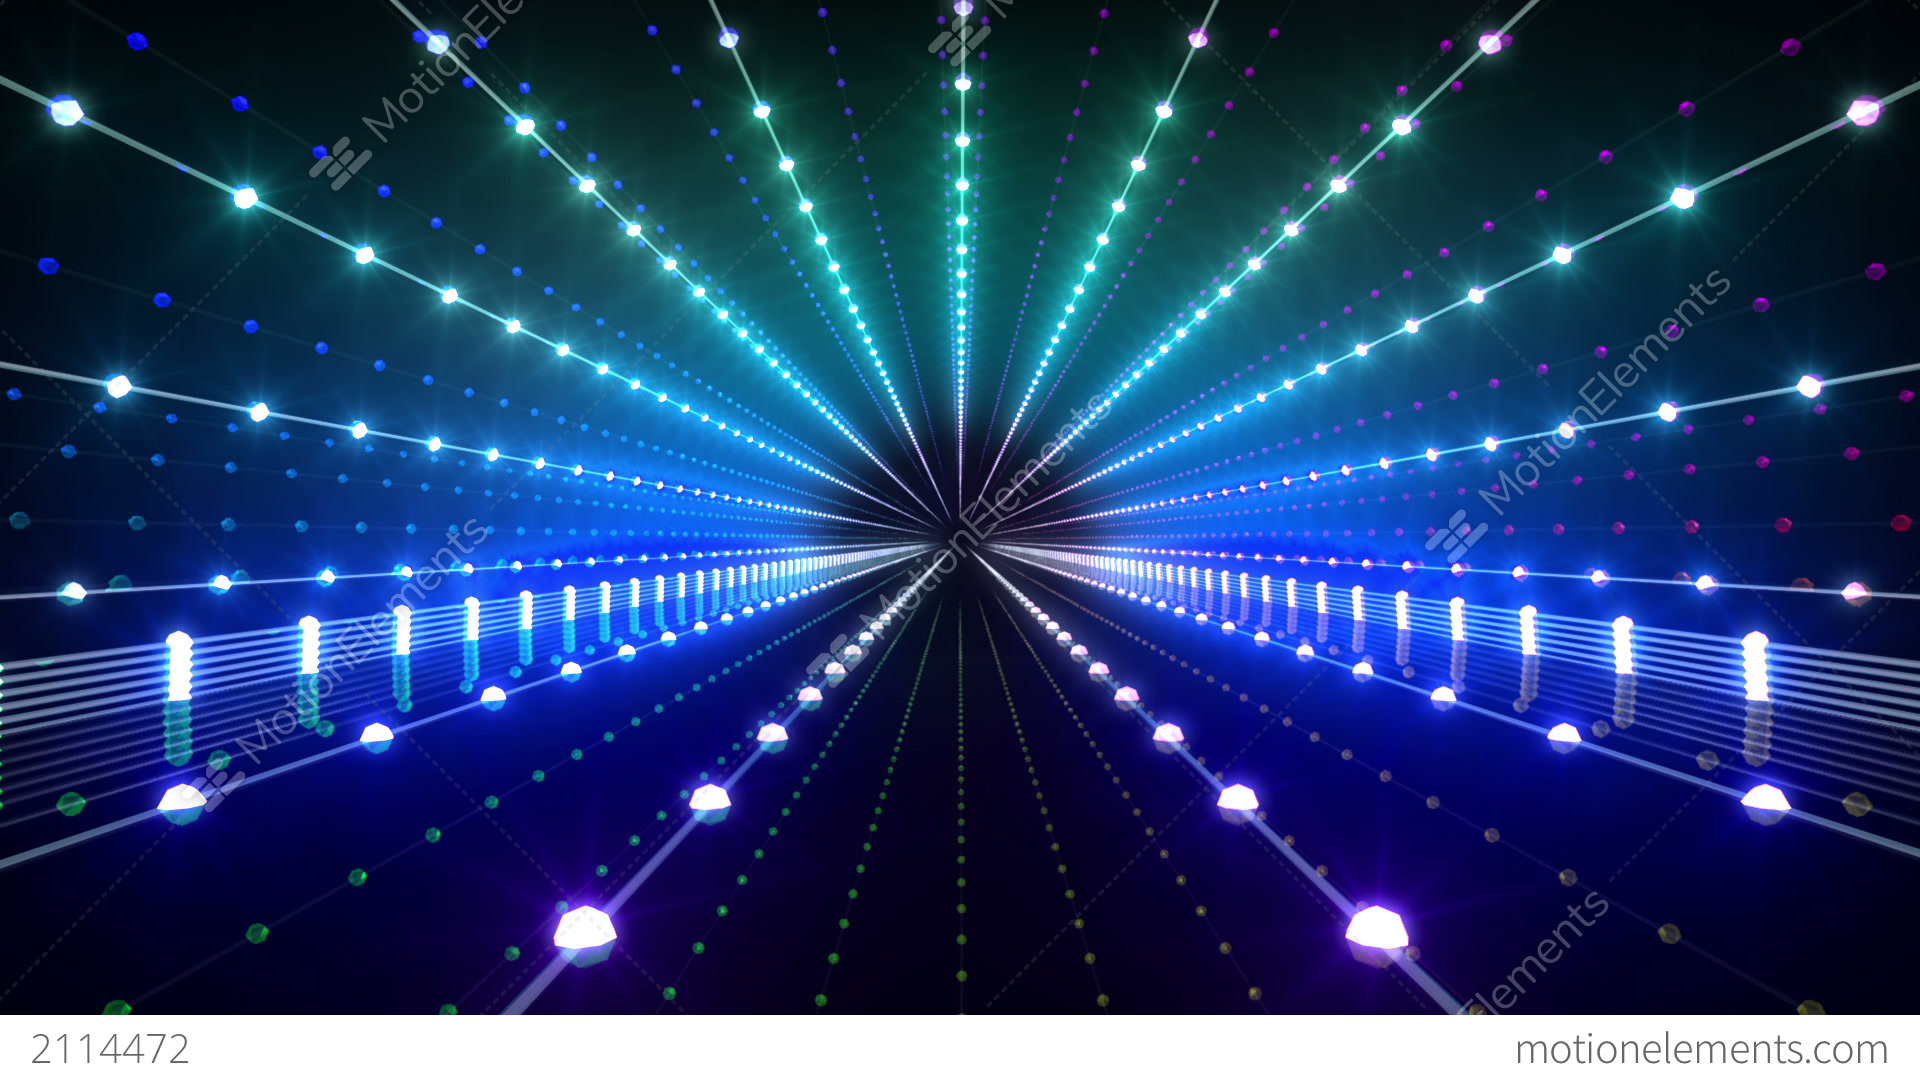 Tunnel tube space road b 4d 2 hd 2114472 - Space wallpaper road ...